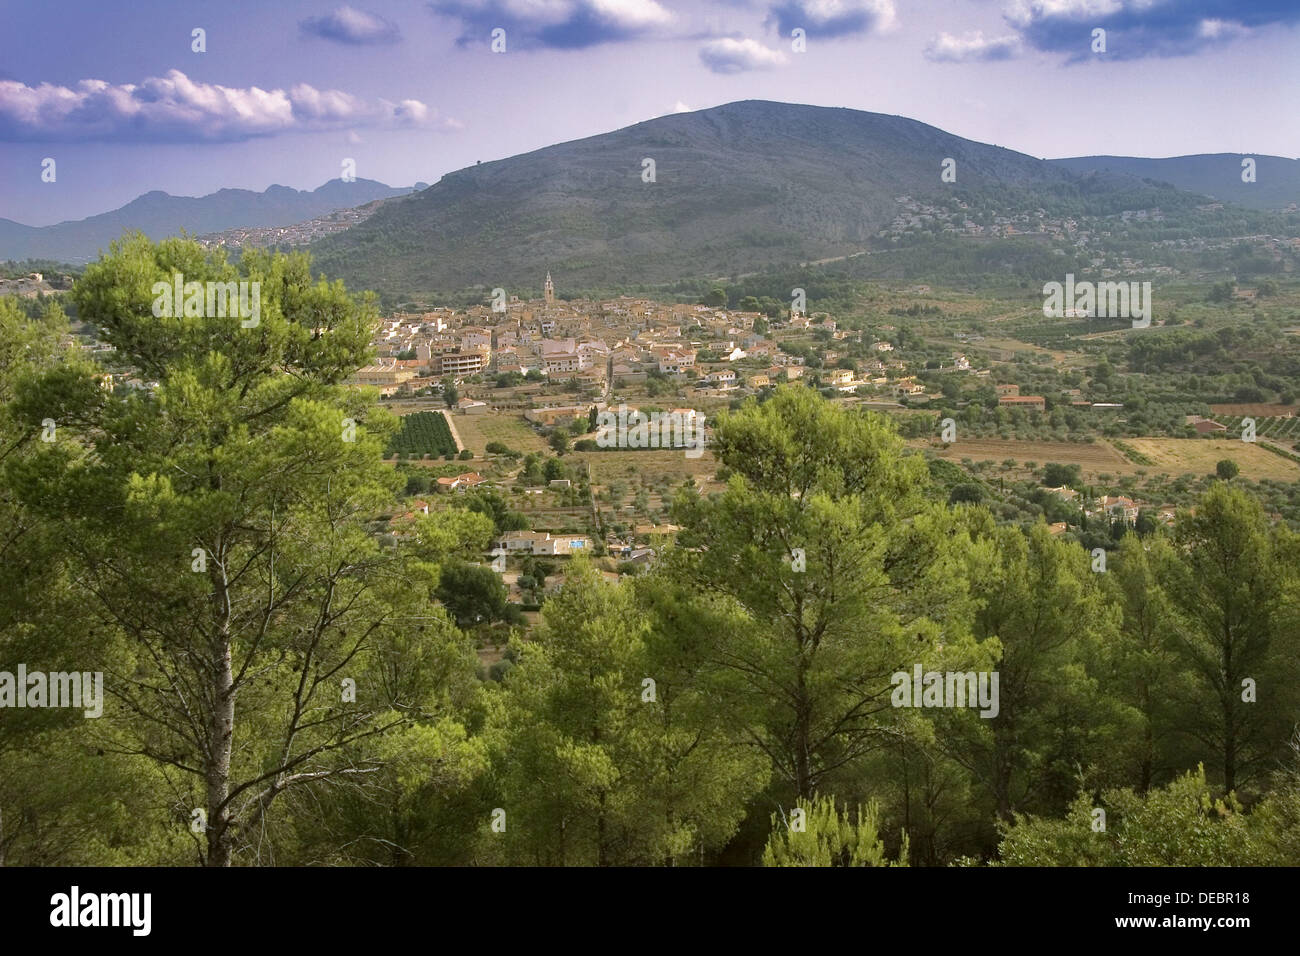 Parcent in the Jalon valley. Alicante province. Spain. - Stock Image